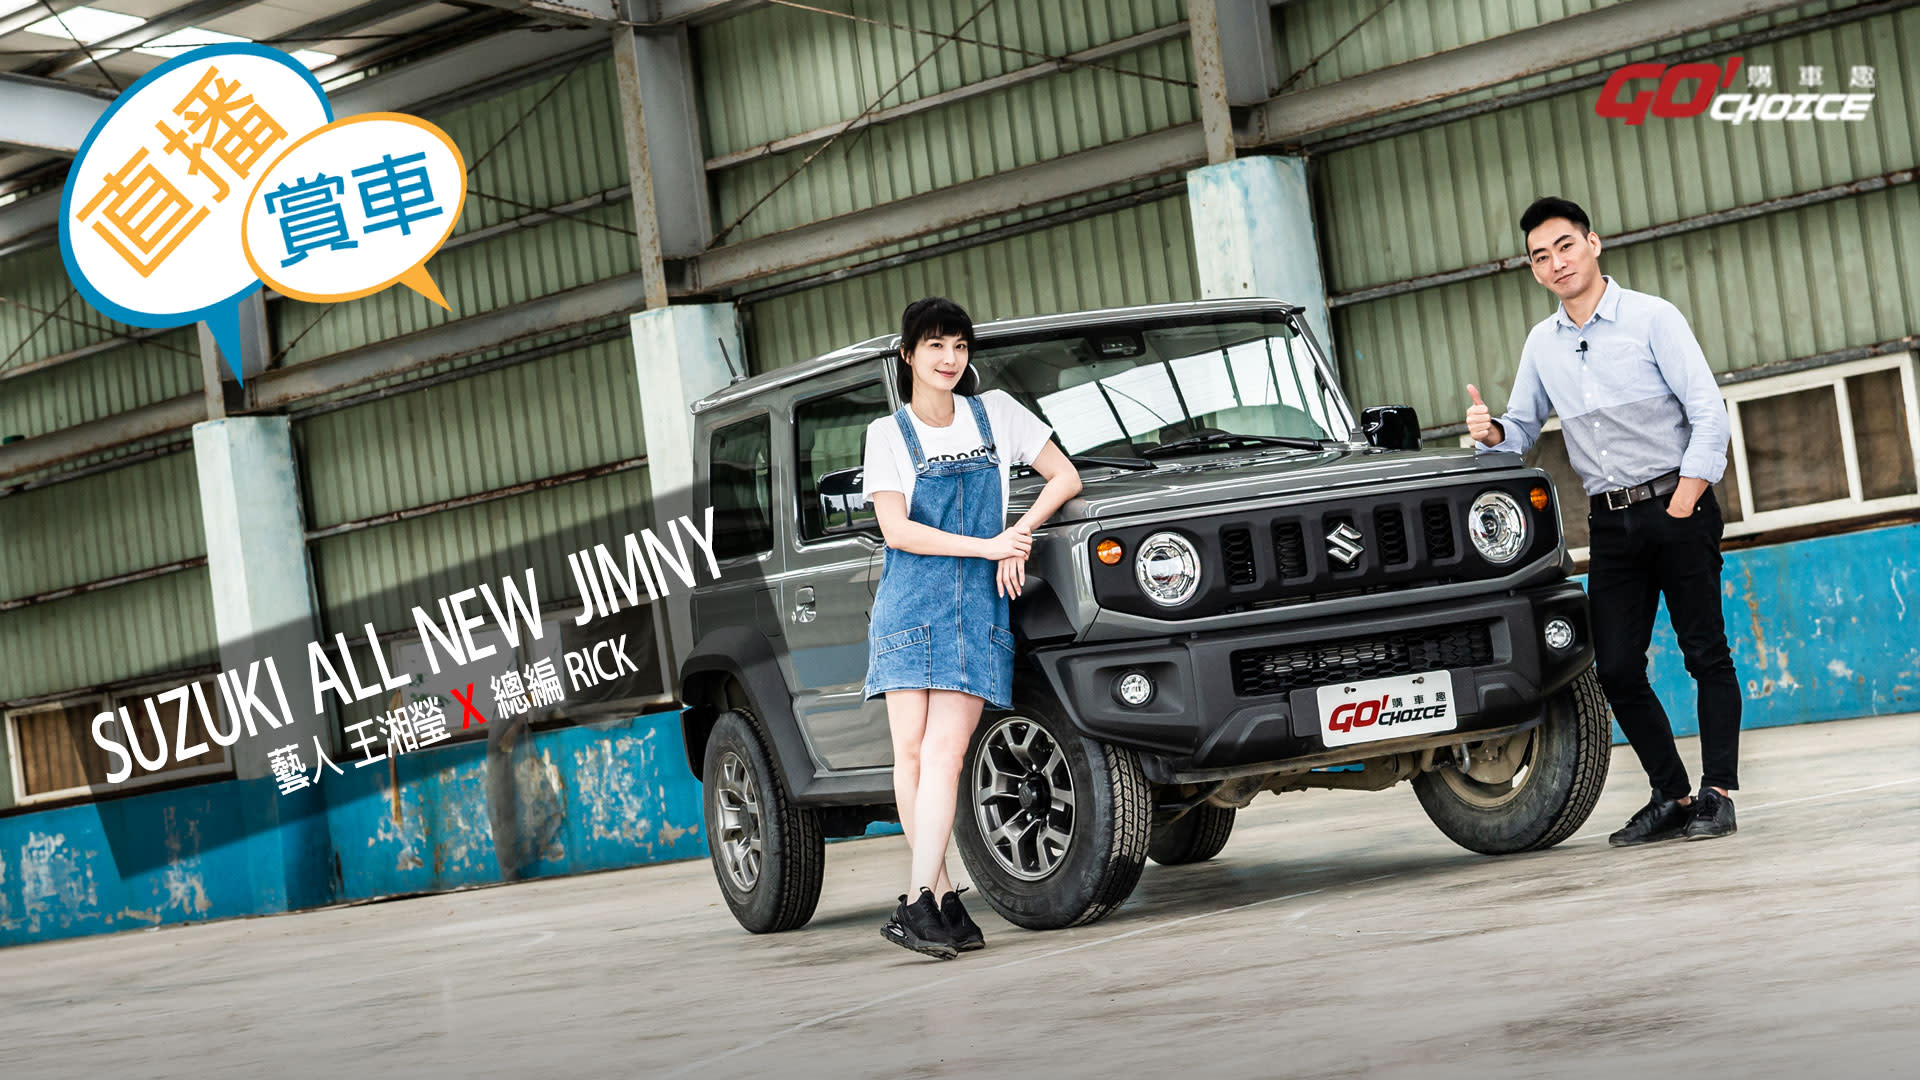 直播賞車-2019 SUZUKI ALL NEW JIMNY_藝人 王湘瑩